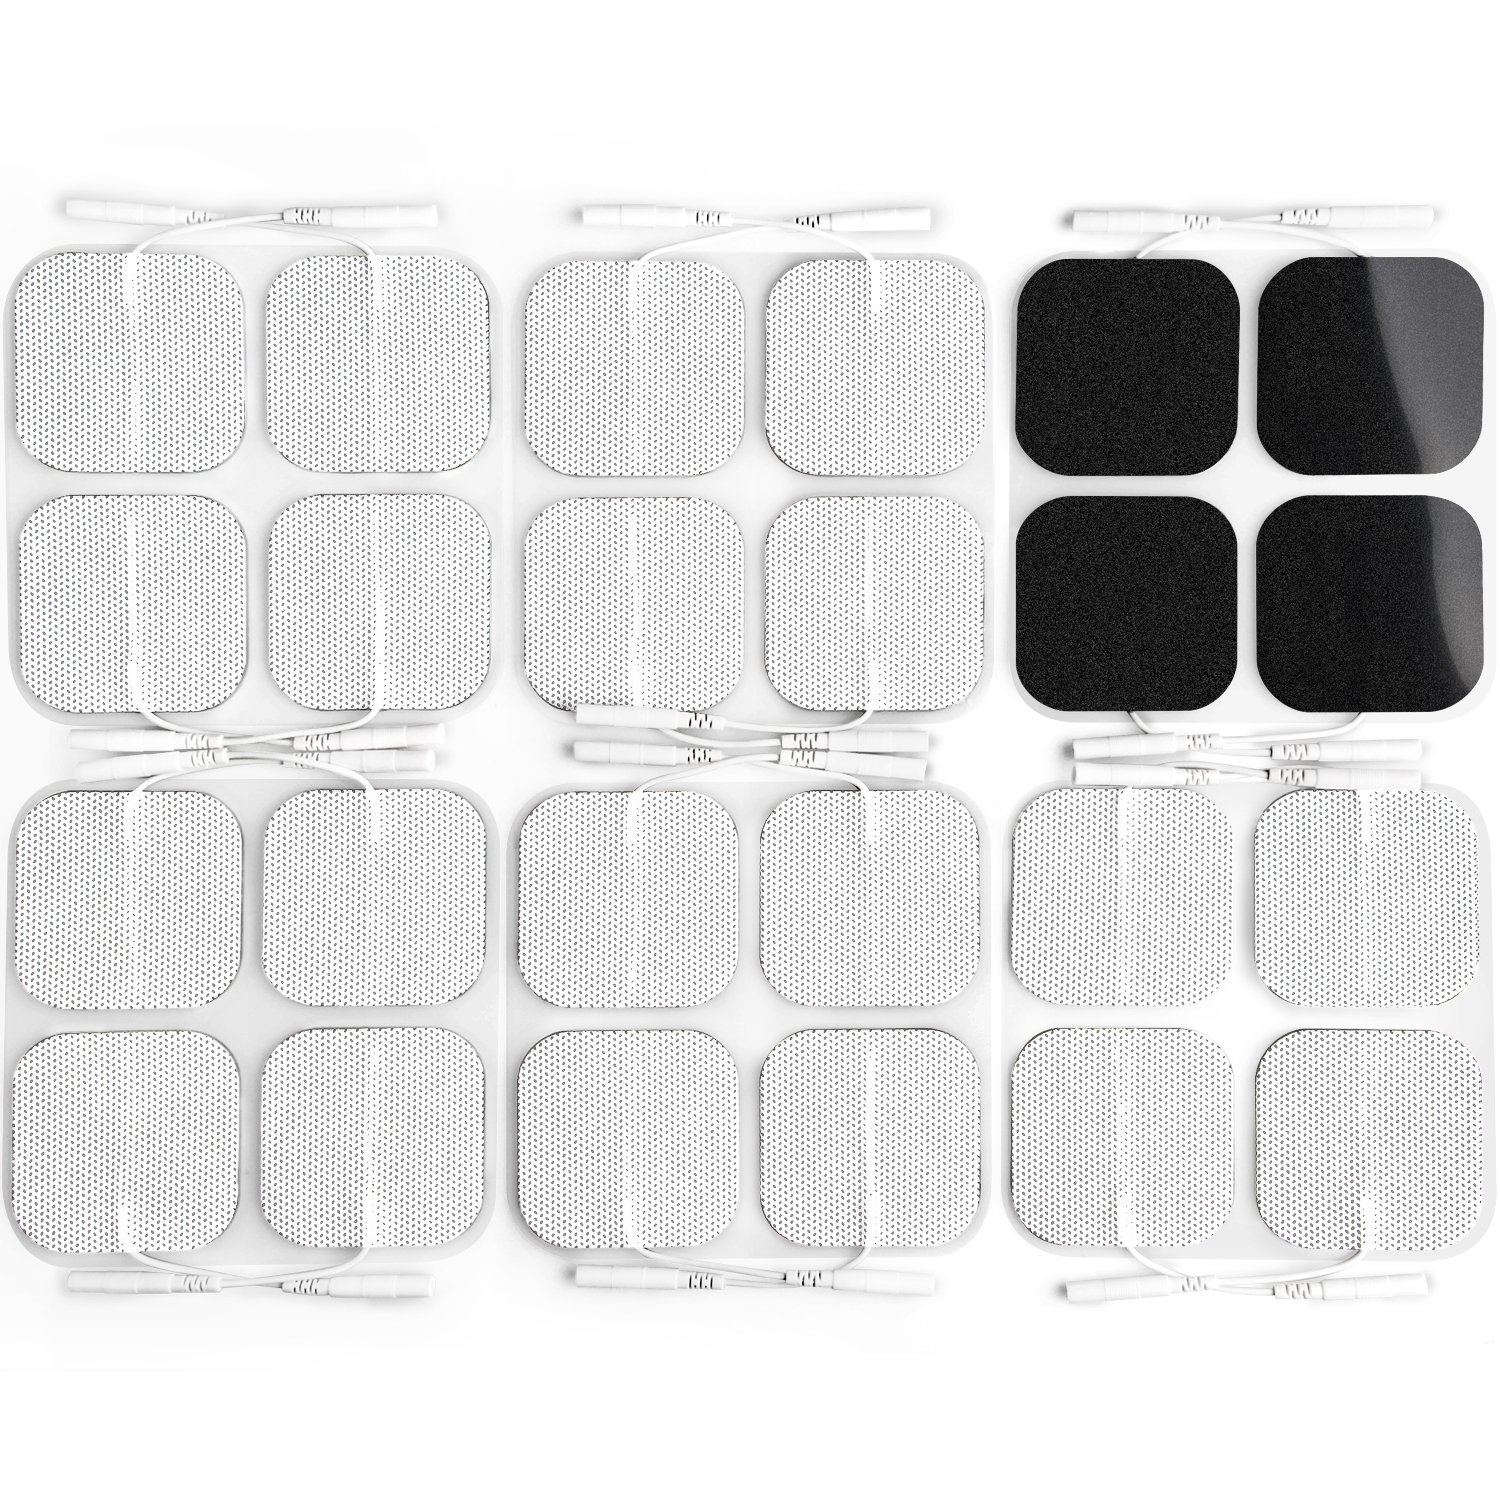 AUVON TENS Unit Pads 2X2 24-Pack, 2nd Gen Latex-Free Replacement Pads Electrode Patches (FDA 510K Cleared) with Upgraded Self-Stick Performance and Non-Irritating Design for Electrotherapy